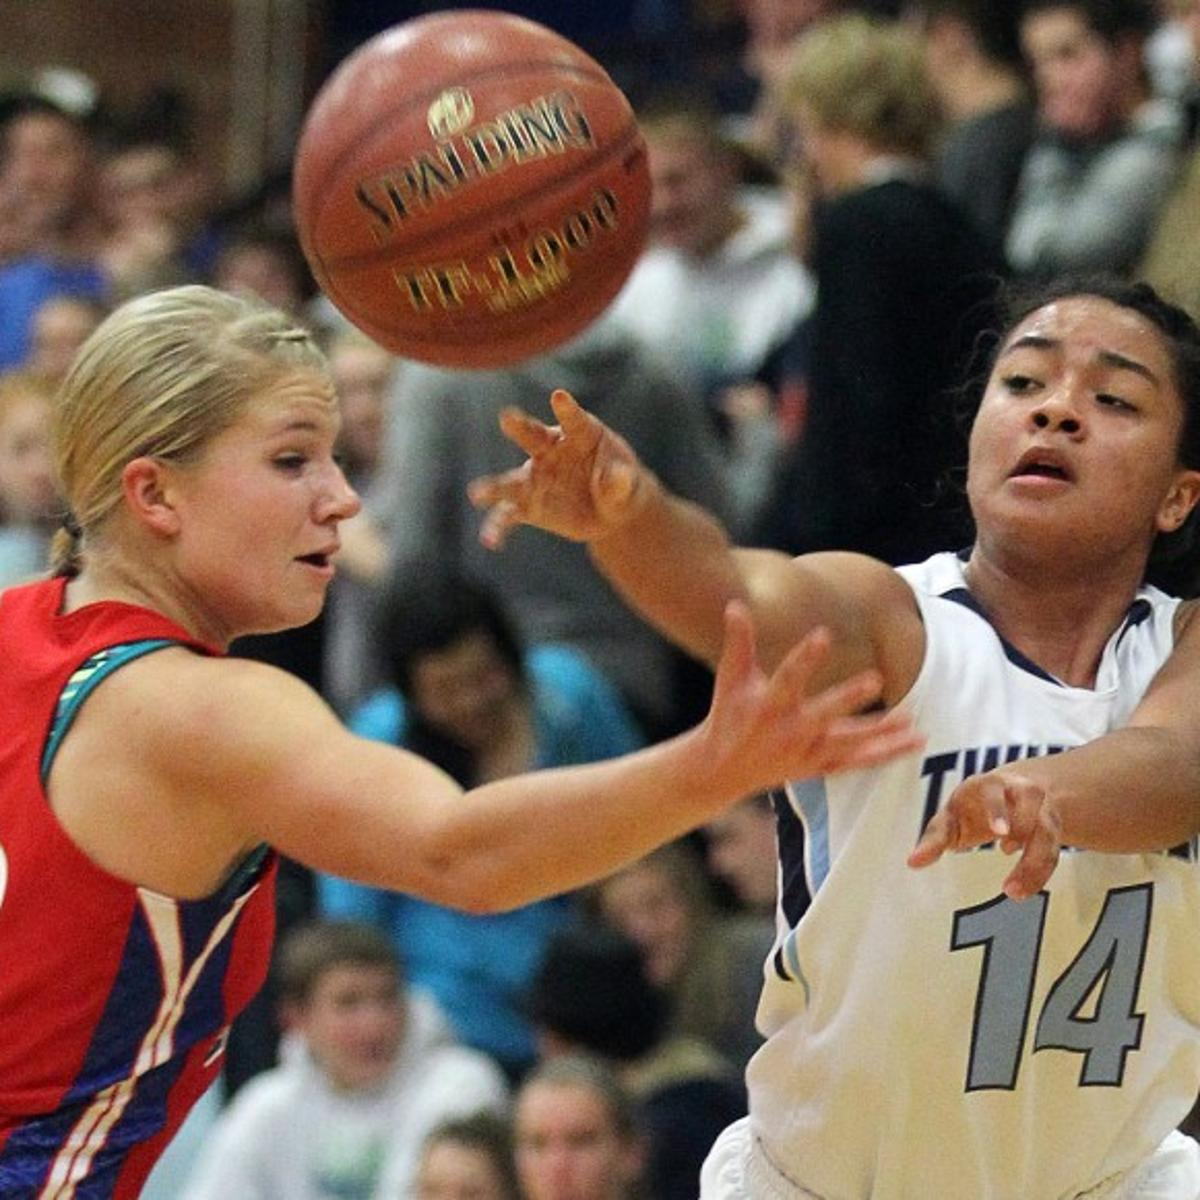 Alyssa Ruland filer girls hold off twin falls | southern idaho sports